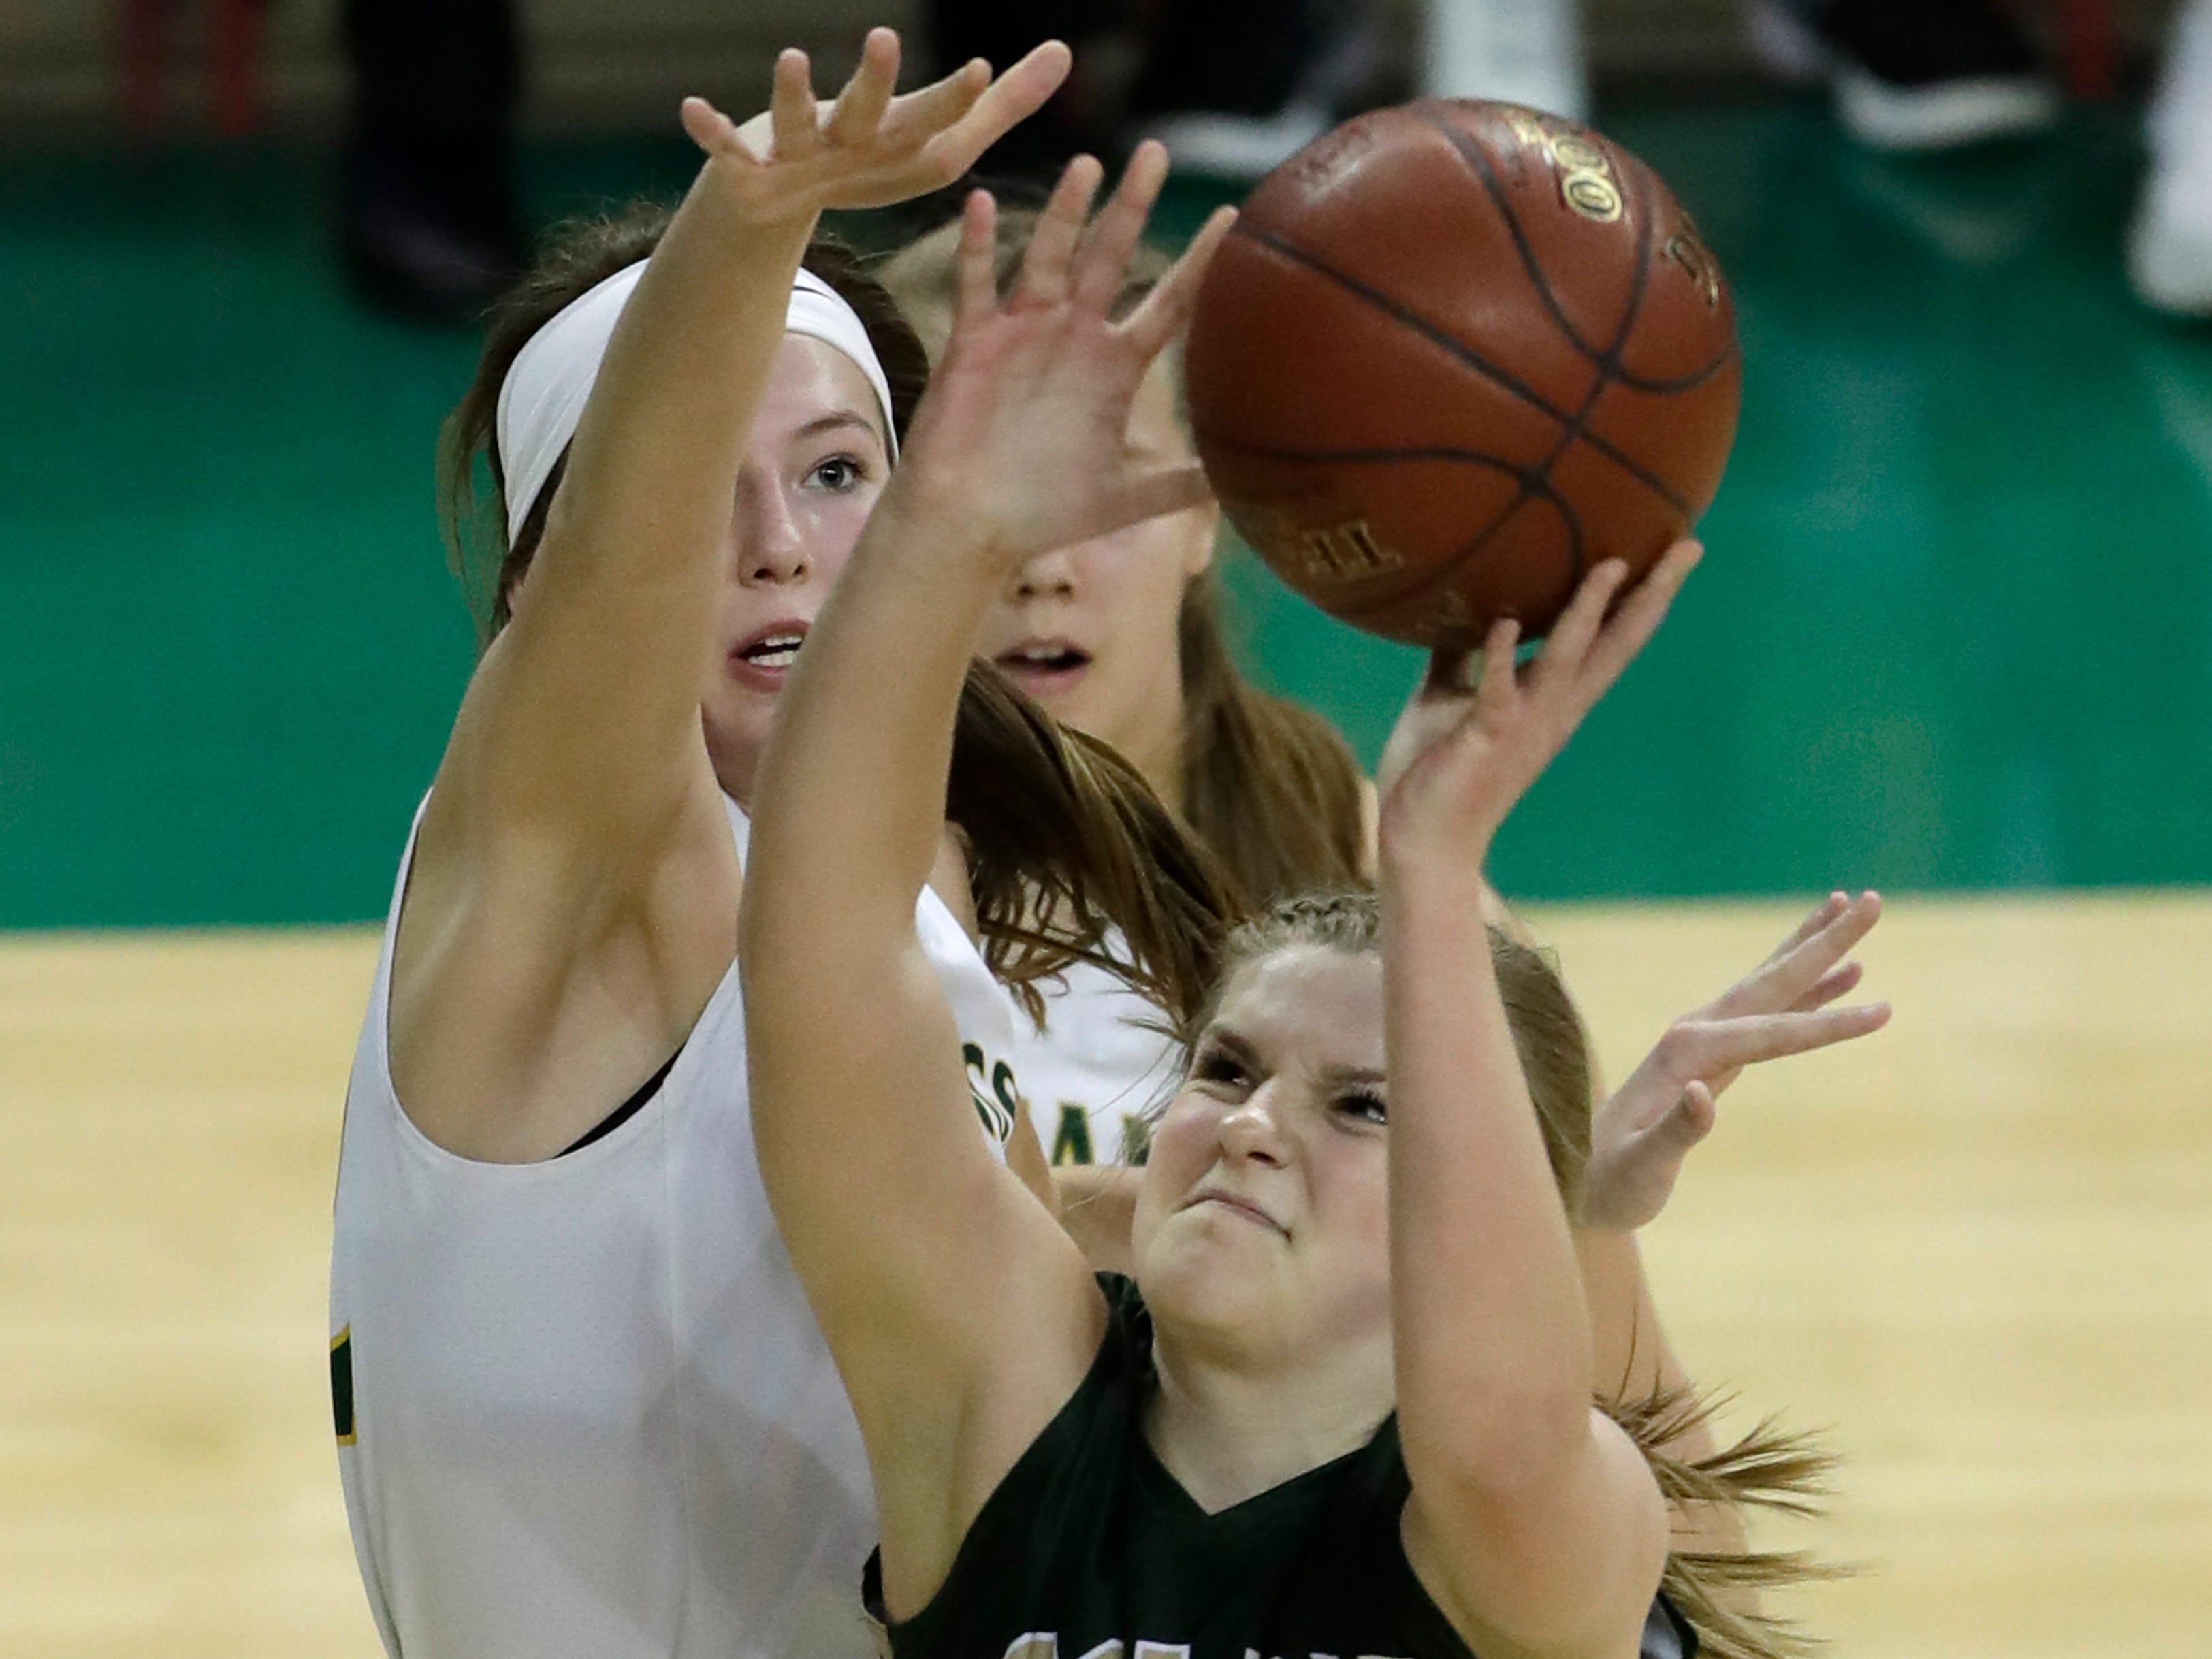 Colby's Lexi Underwood (24) puts up a shot against Melrose-Mindoro's Calette Lockington (10) during their Division 4 semifinal game at the WIAA girls state basketball tournament Thursday, March 7, 2019, at the Resch Center in Ashwaubenon, Wis.